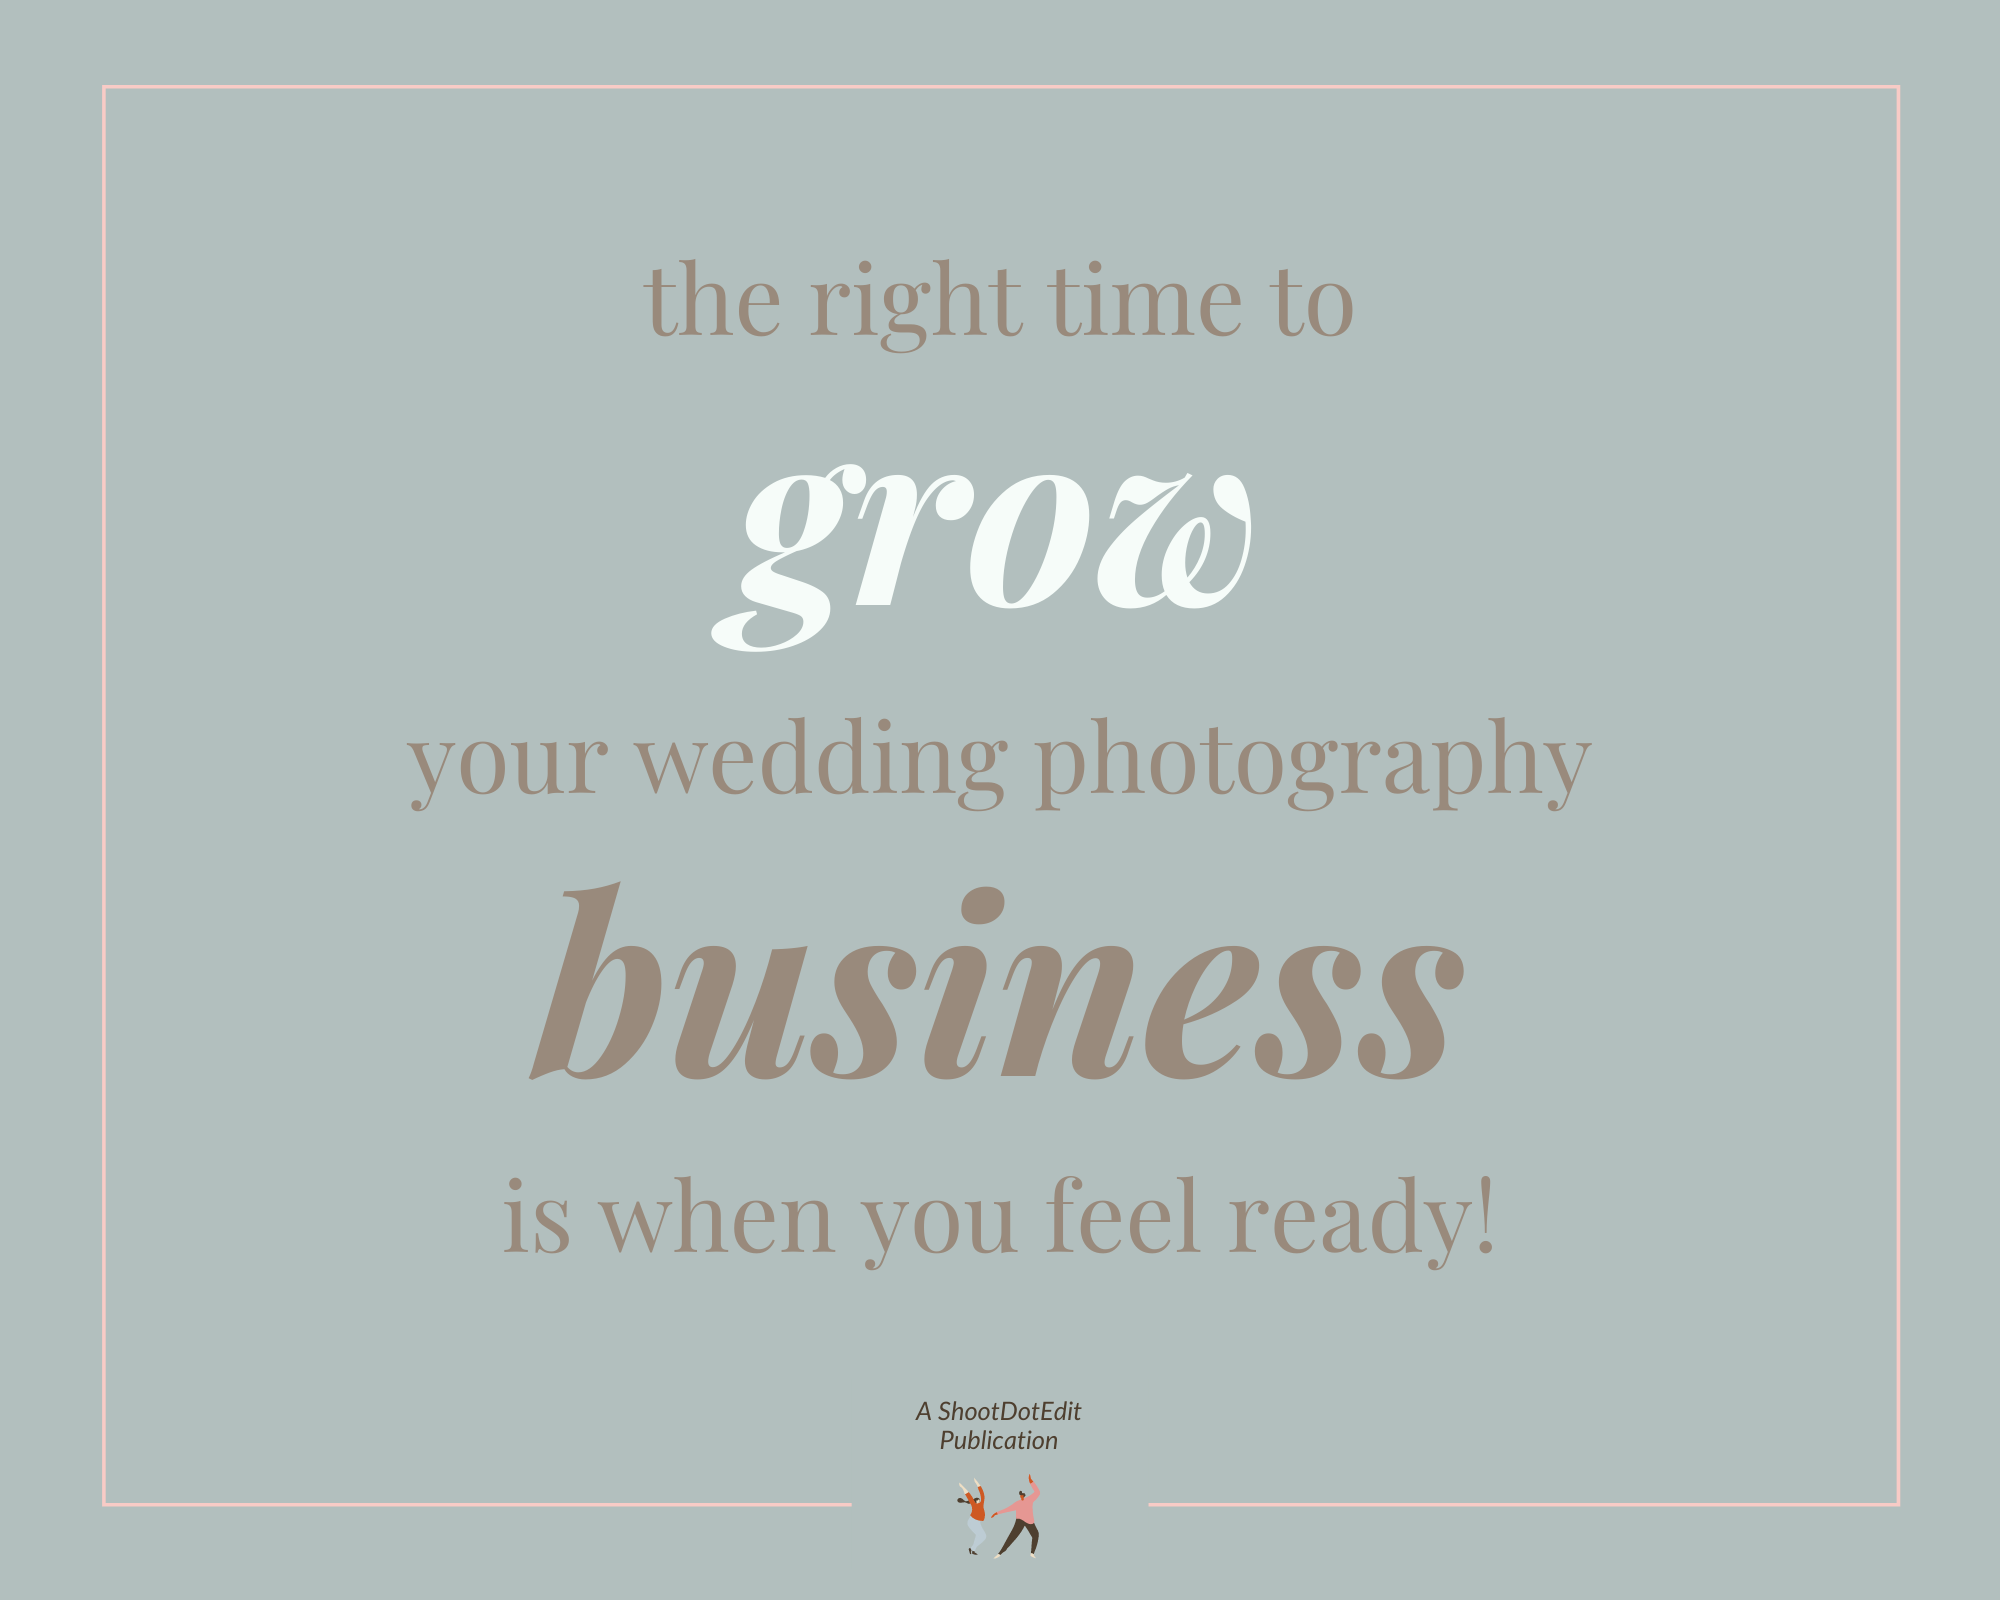 Infographic - The right time to grow your wedding photography business is when you feel ready